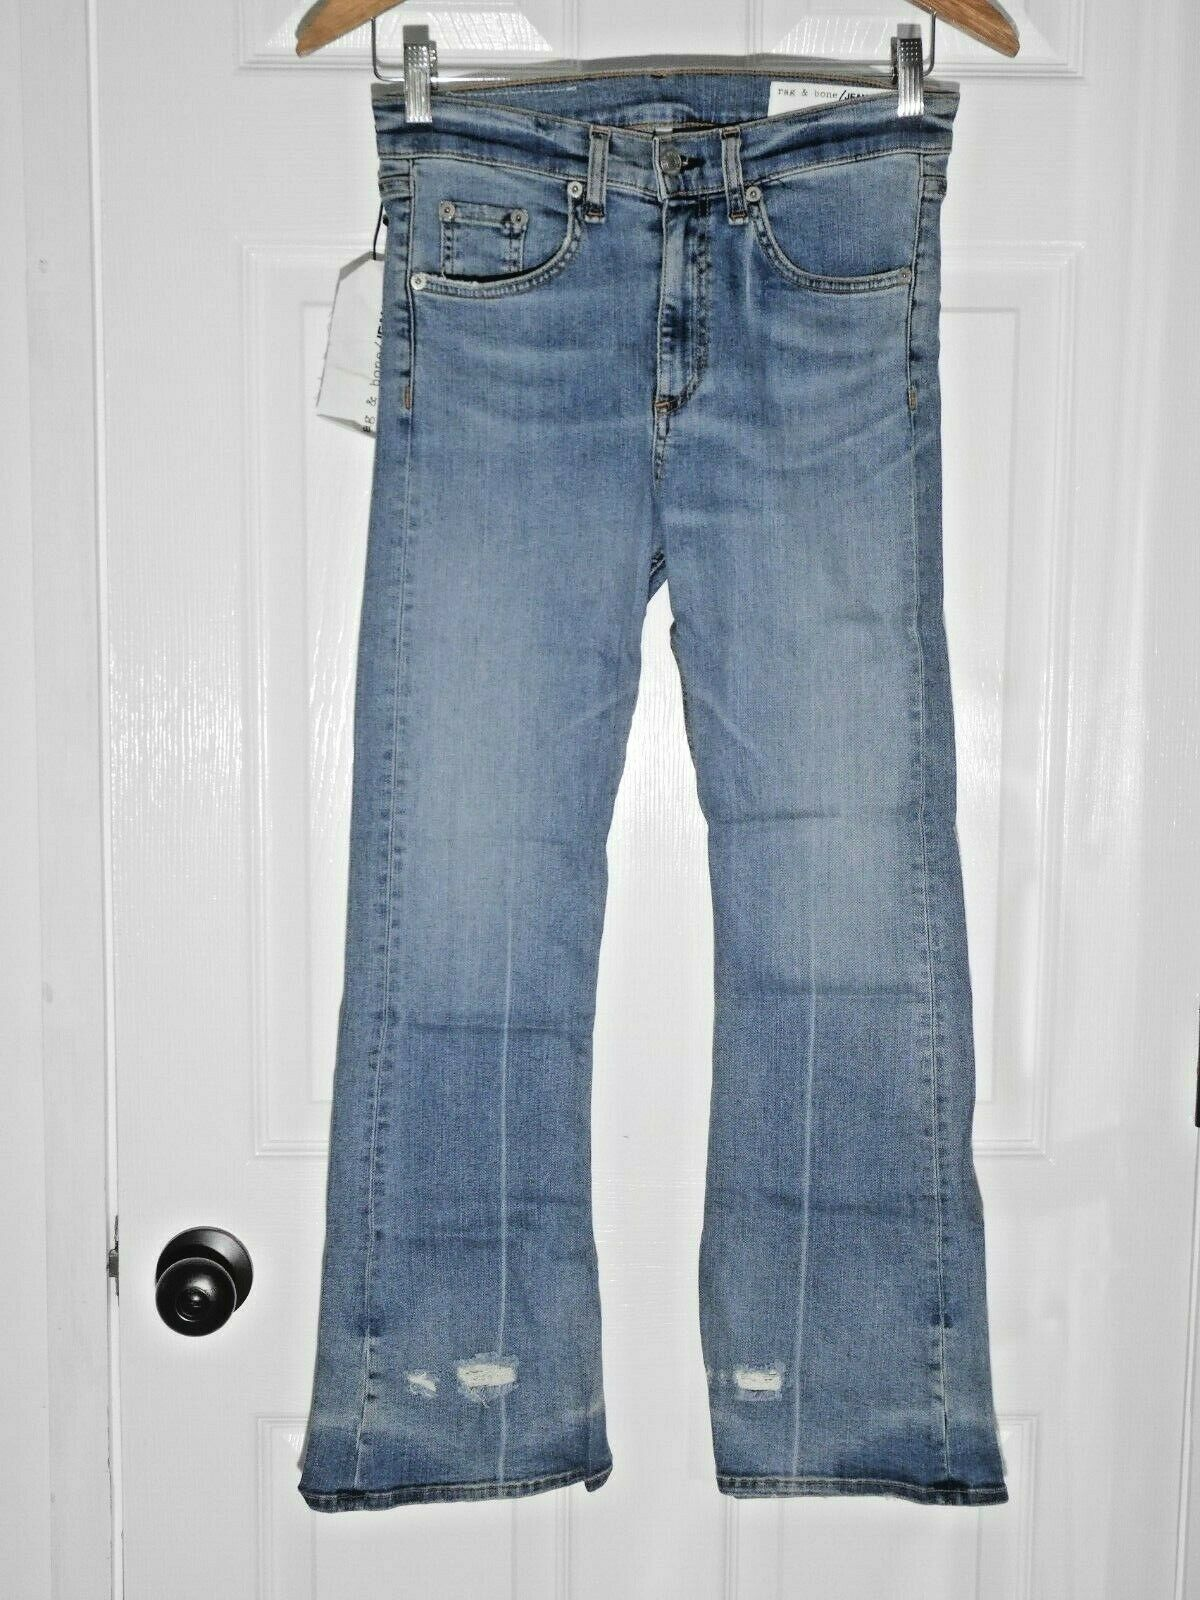 250 NEW Rag & Bone JEAN 10 Inch Cropped Flare in Vale Destroyed Size 27